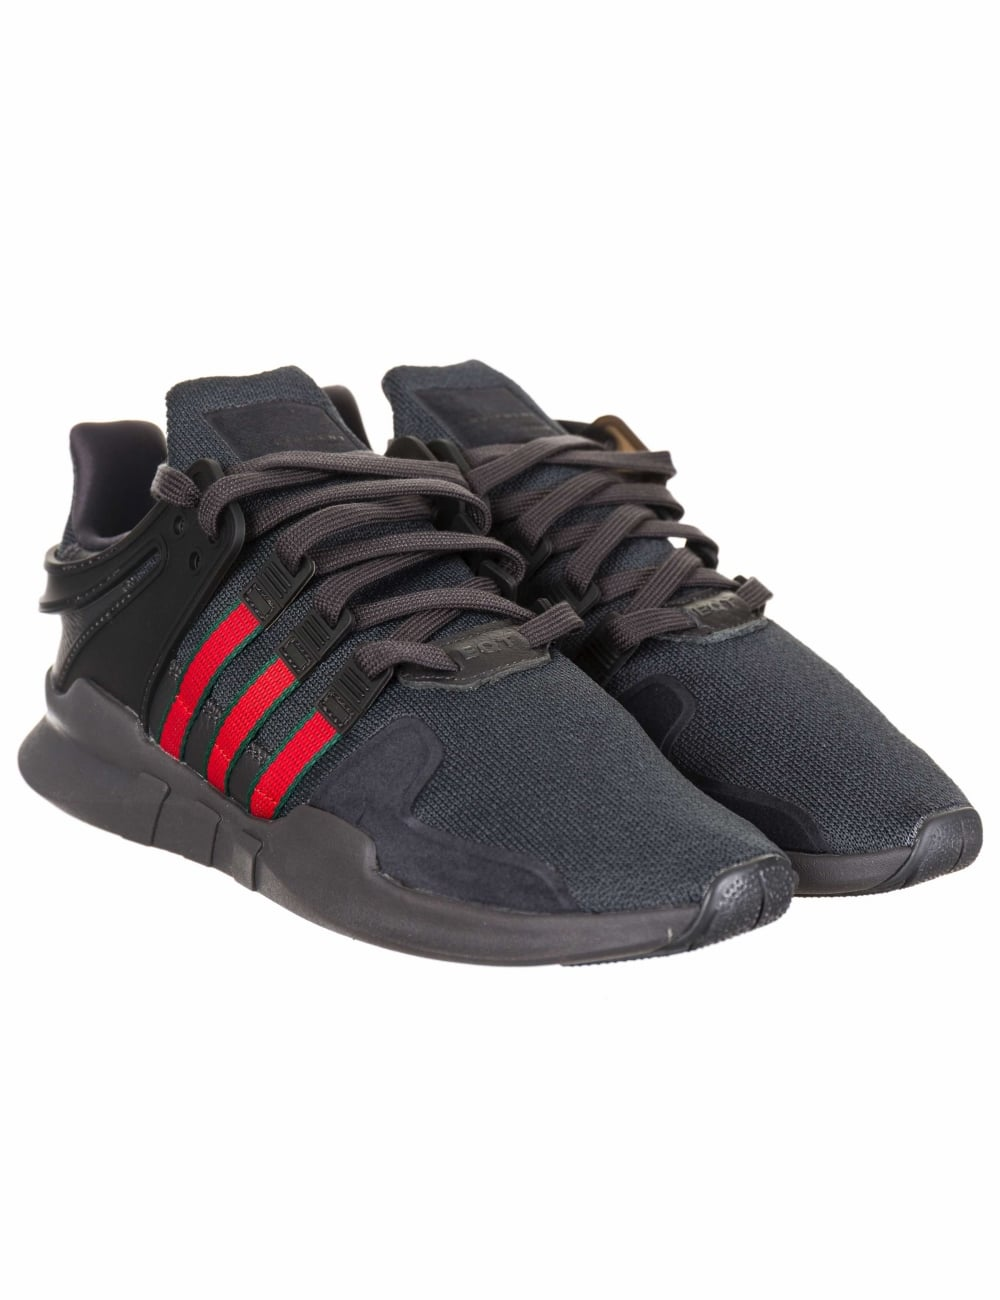 new product bbb64 6c0a3 EQT Support Advance Trainers - Utility Black/Scarlet (BB6777)